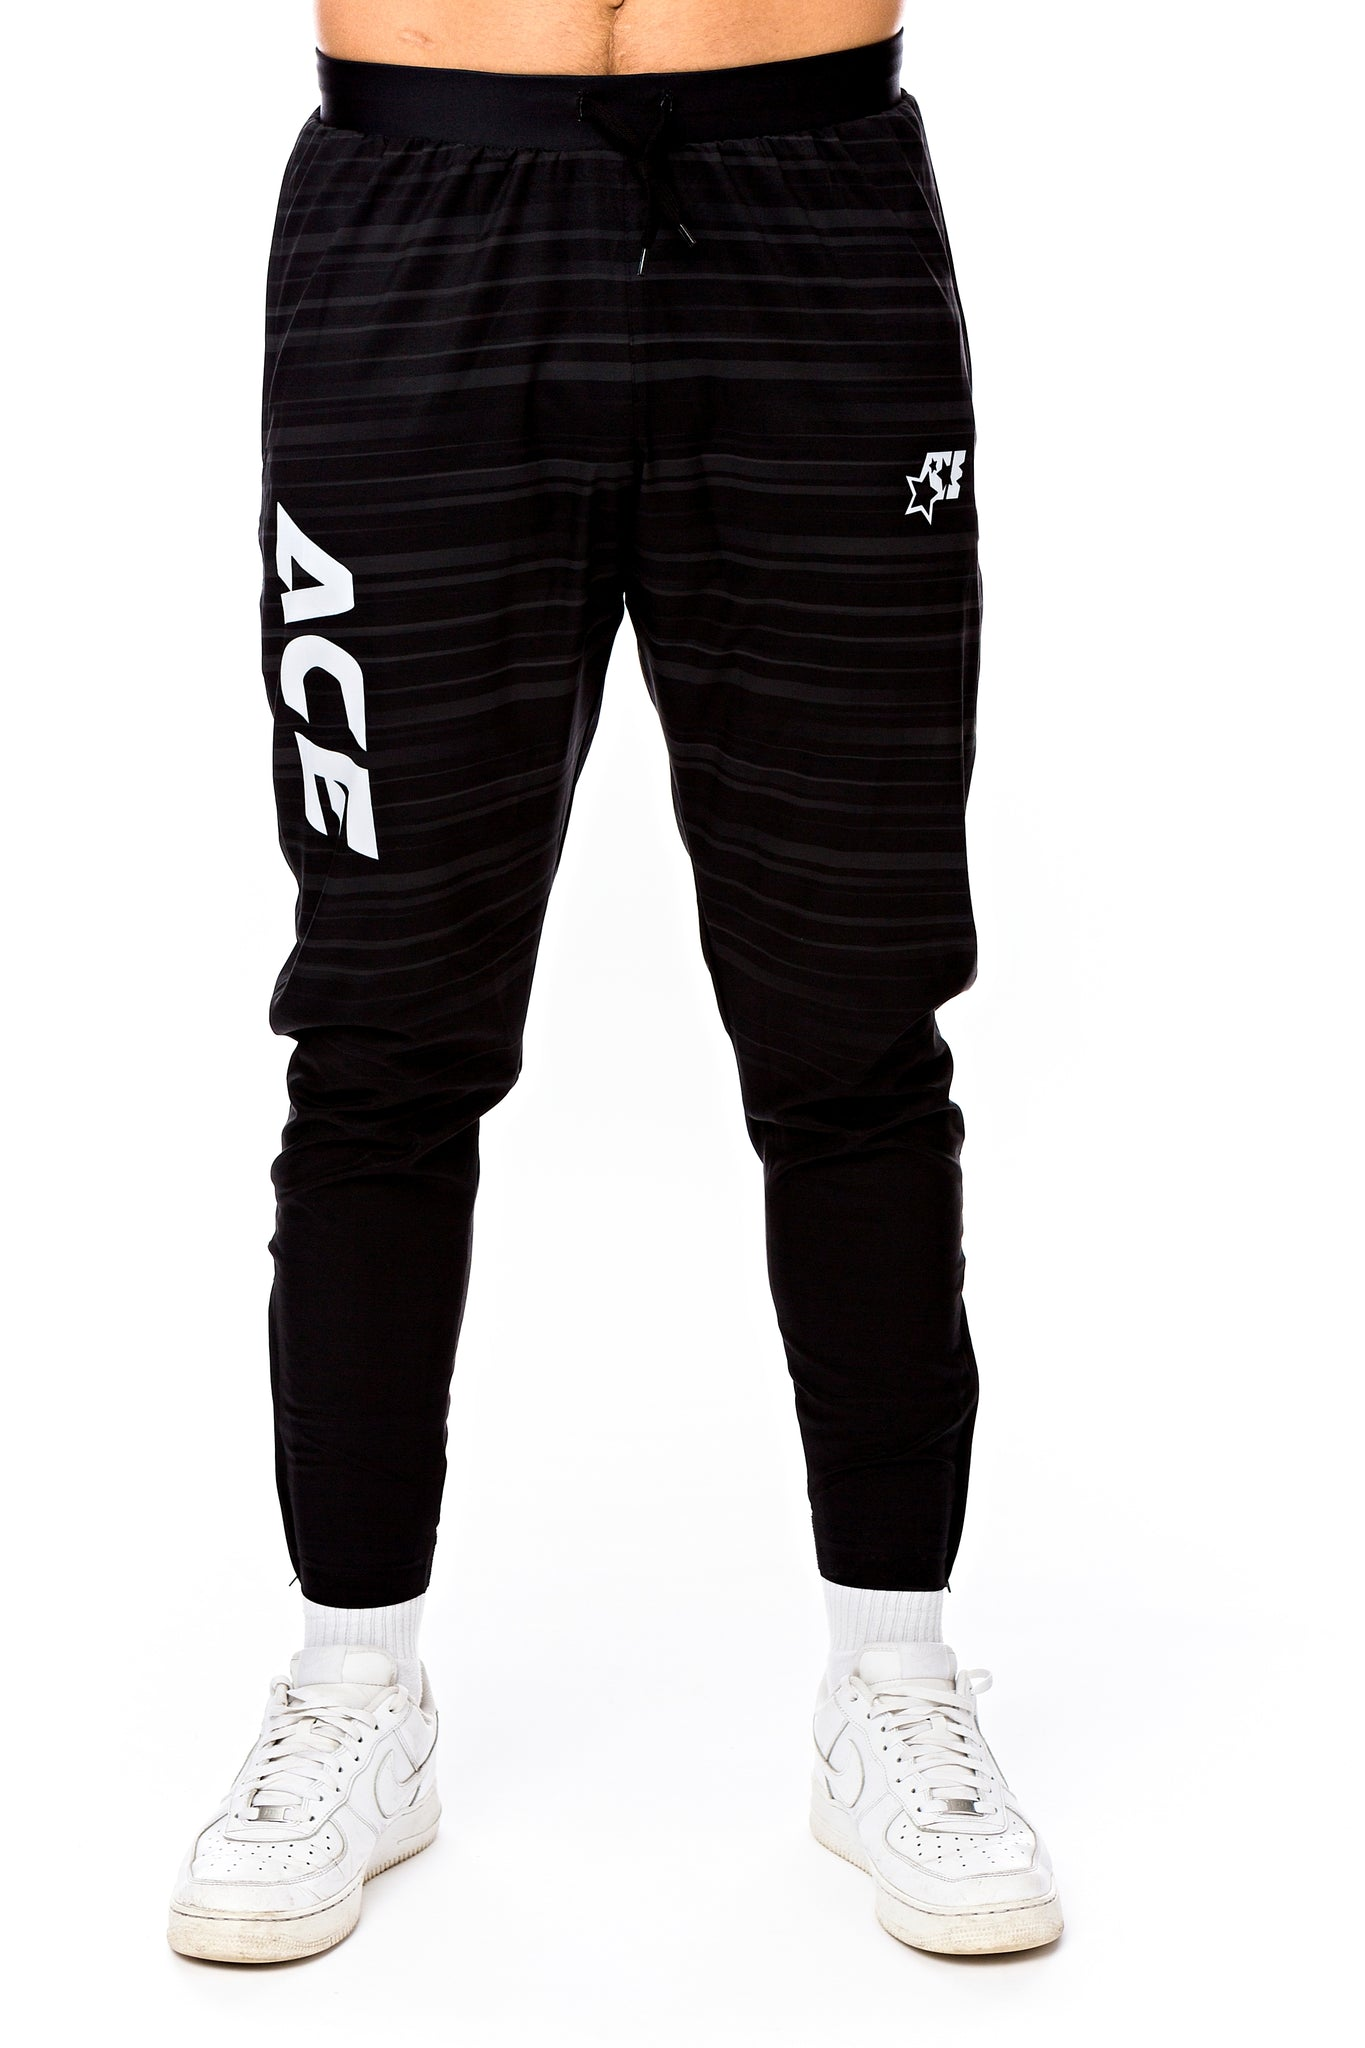 ULTRA LIGHT TRAINING SUIT - ACE BLACK WHITE - ACEPERFORMANCE